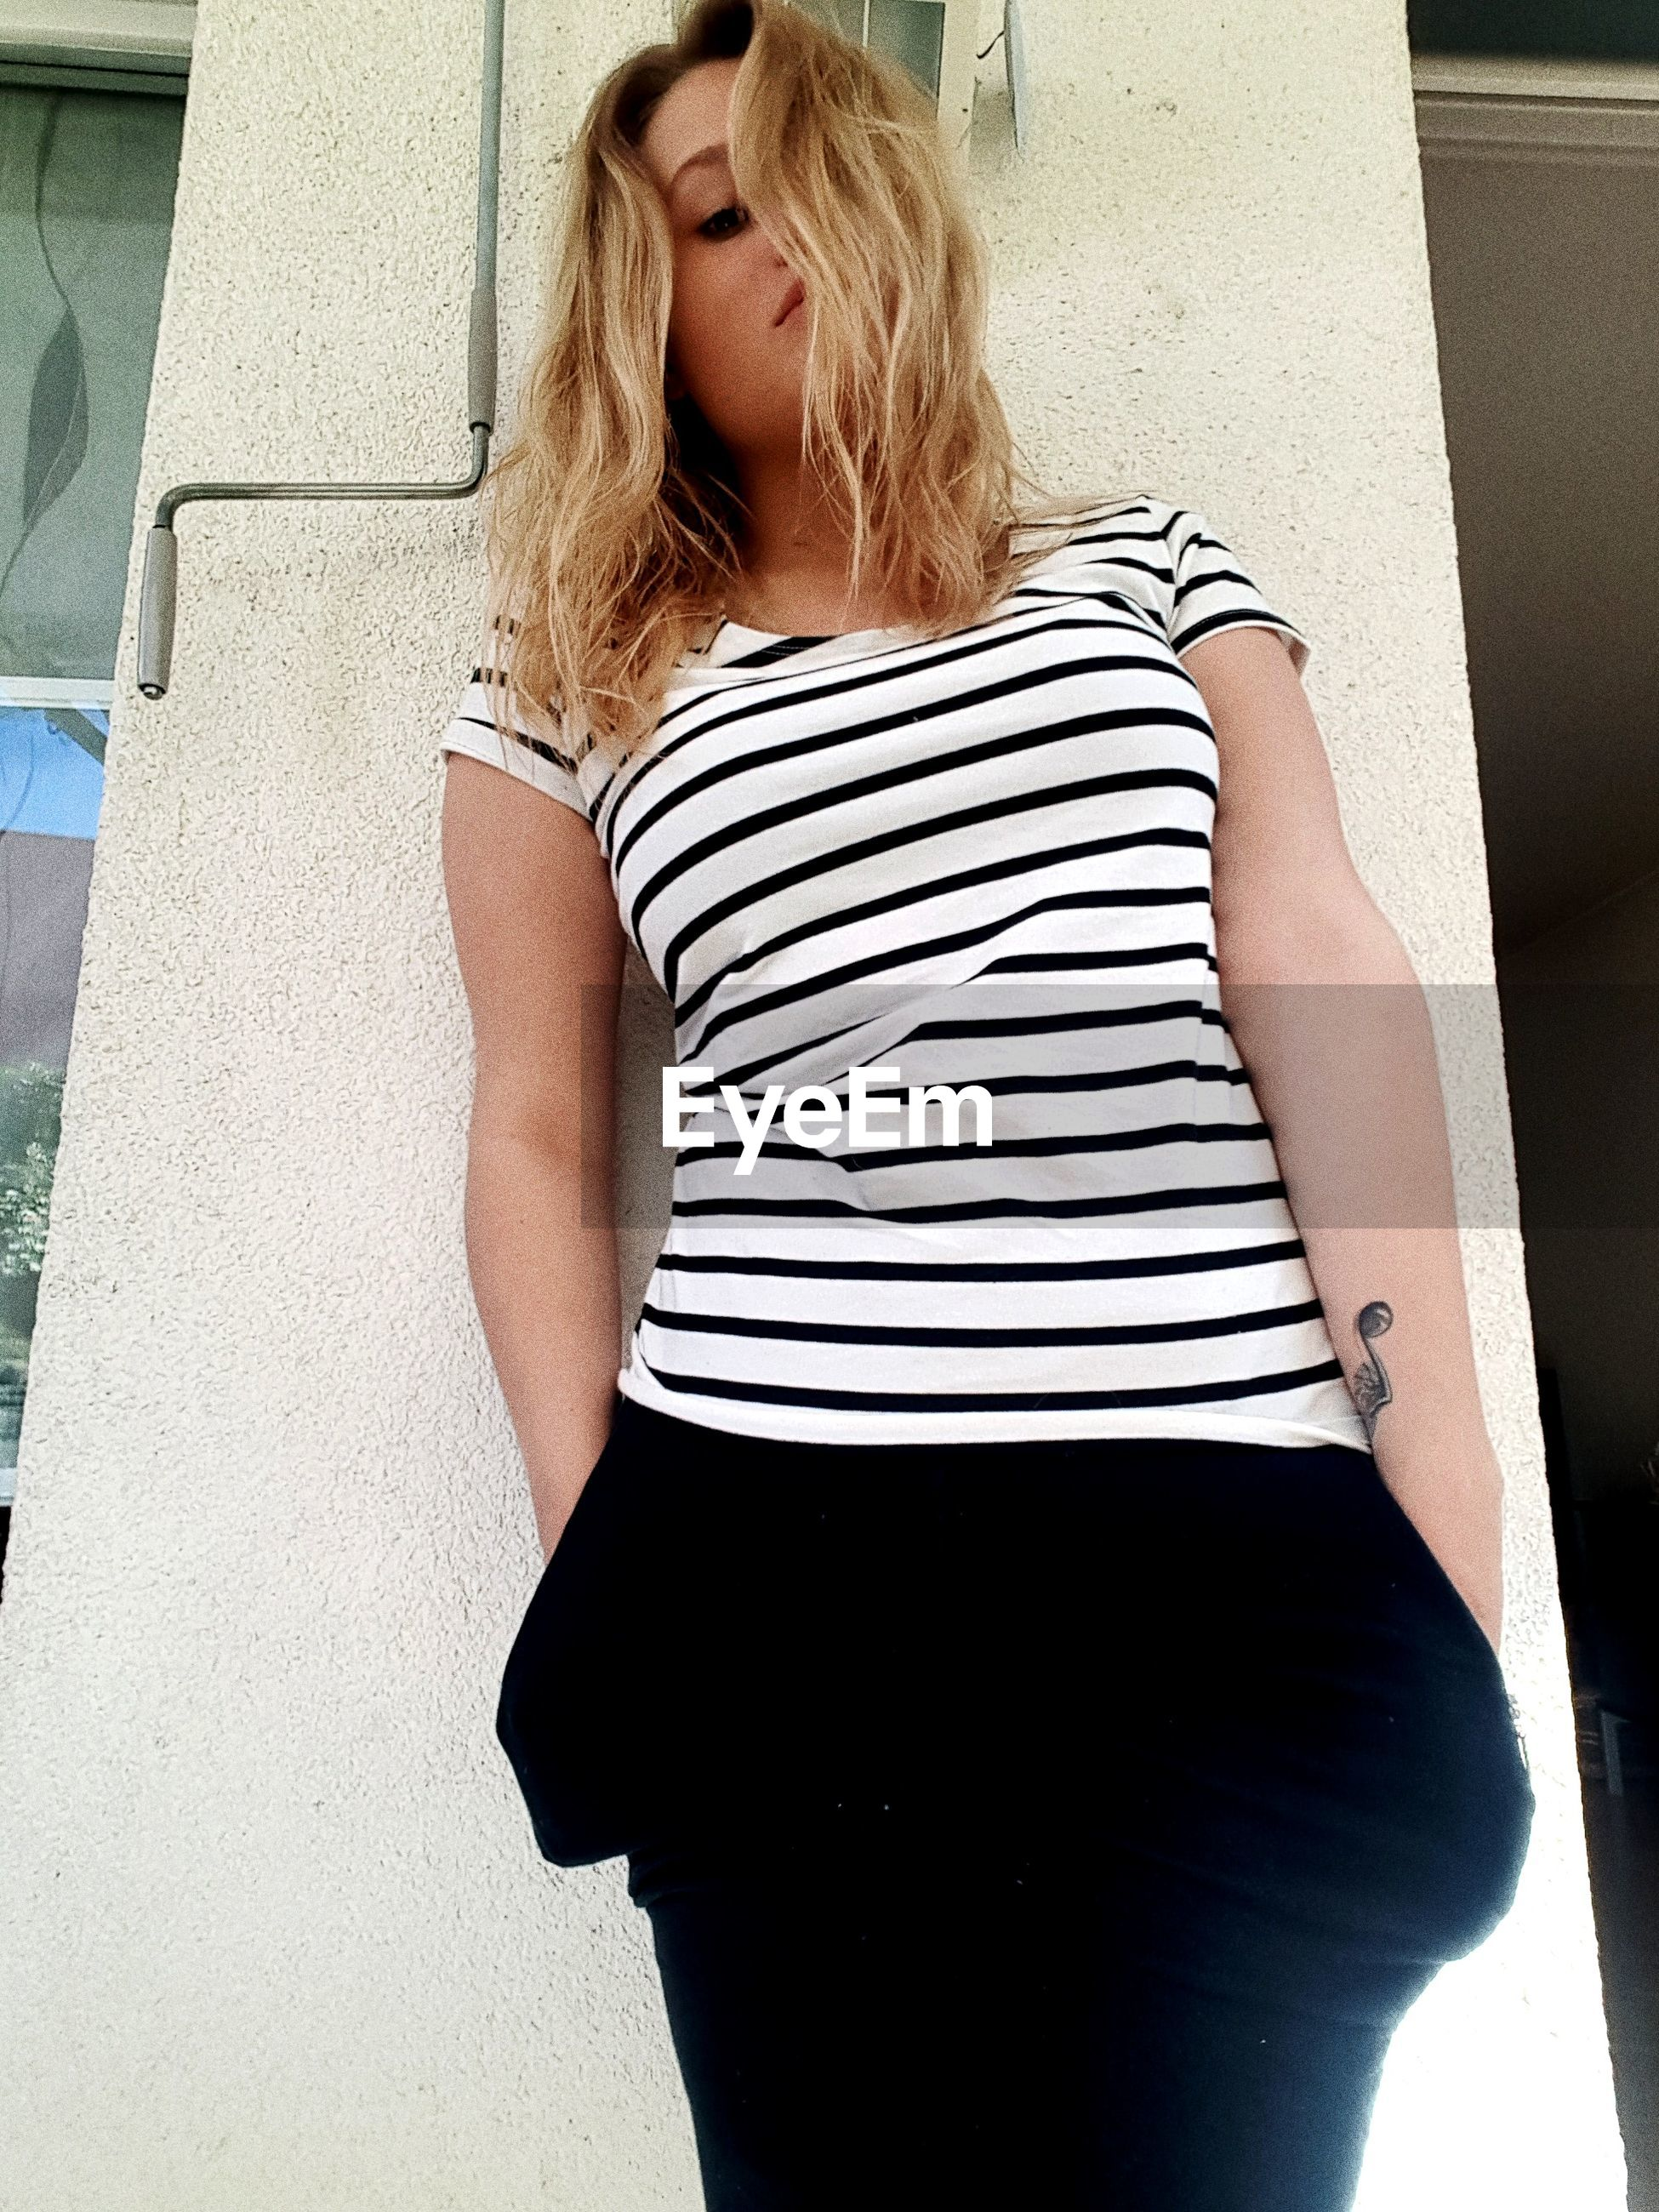 striped, blond hair, only women, one woman only, one person, waist up, pregnant, adults only, front view, women, beauty, beautiful woman, indoors, young women, real people, day, adult, people, human abdomen, human body part, abdomen